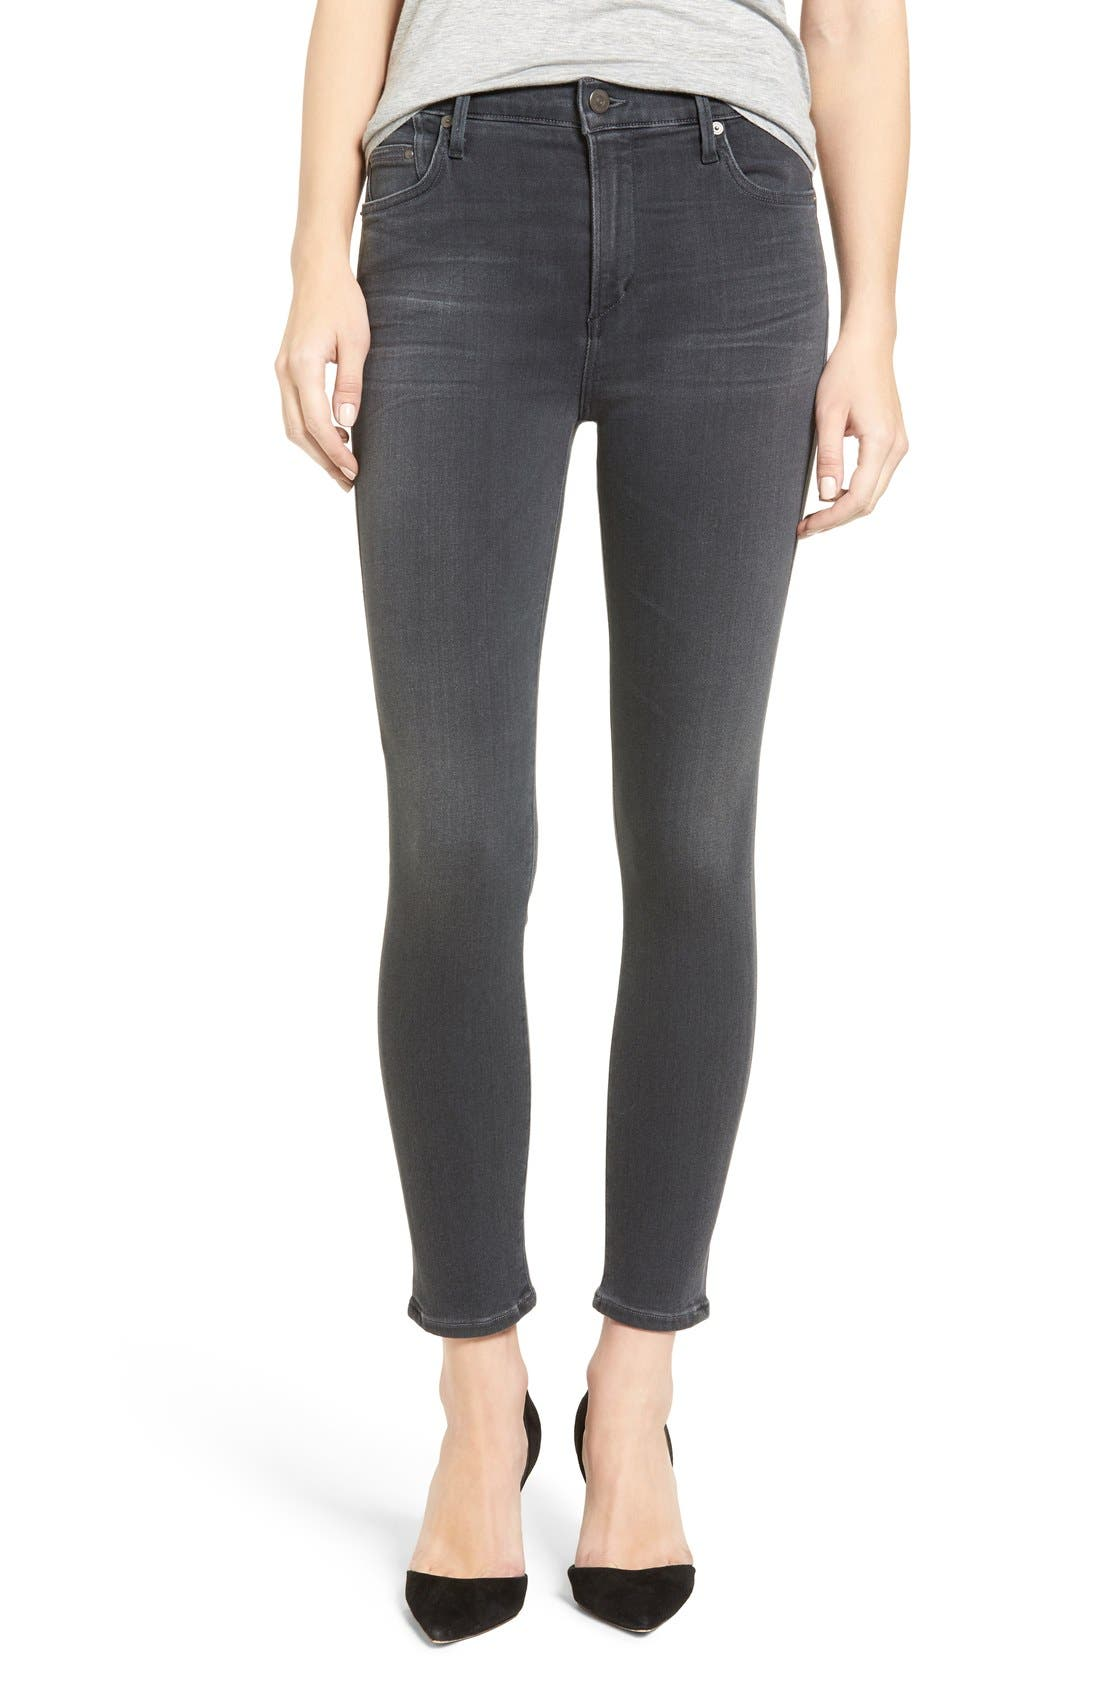 Rocket High Waist Crop Skinny Jeans,                             Alternate thumbnail 6, color,                             002